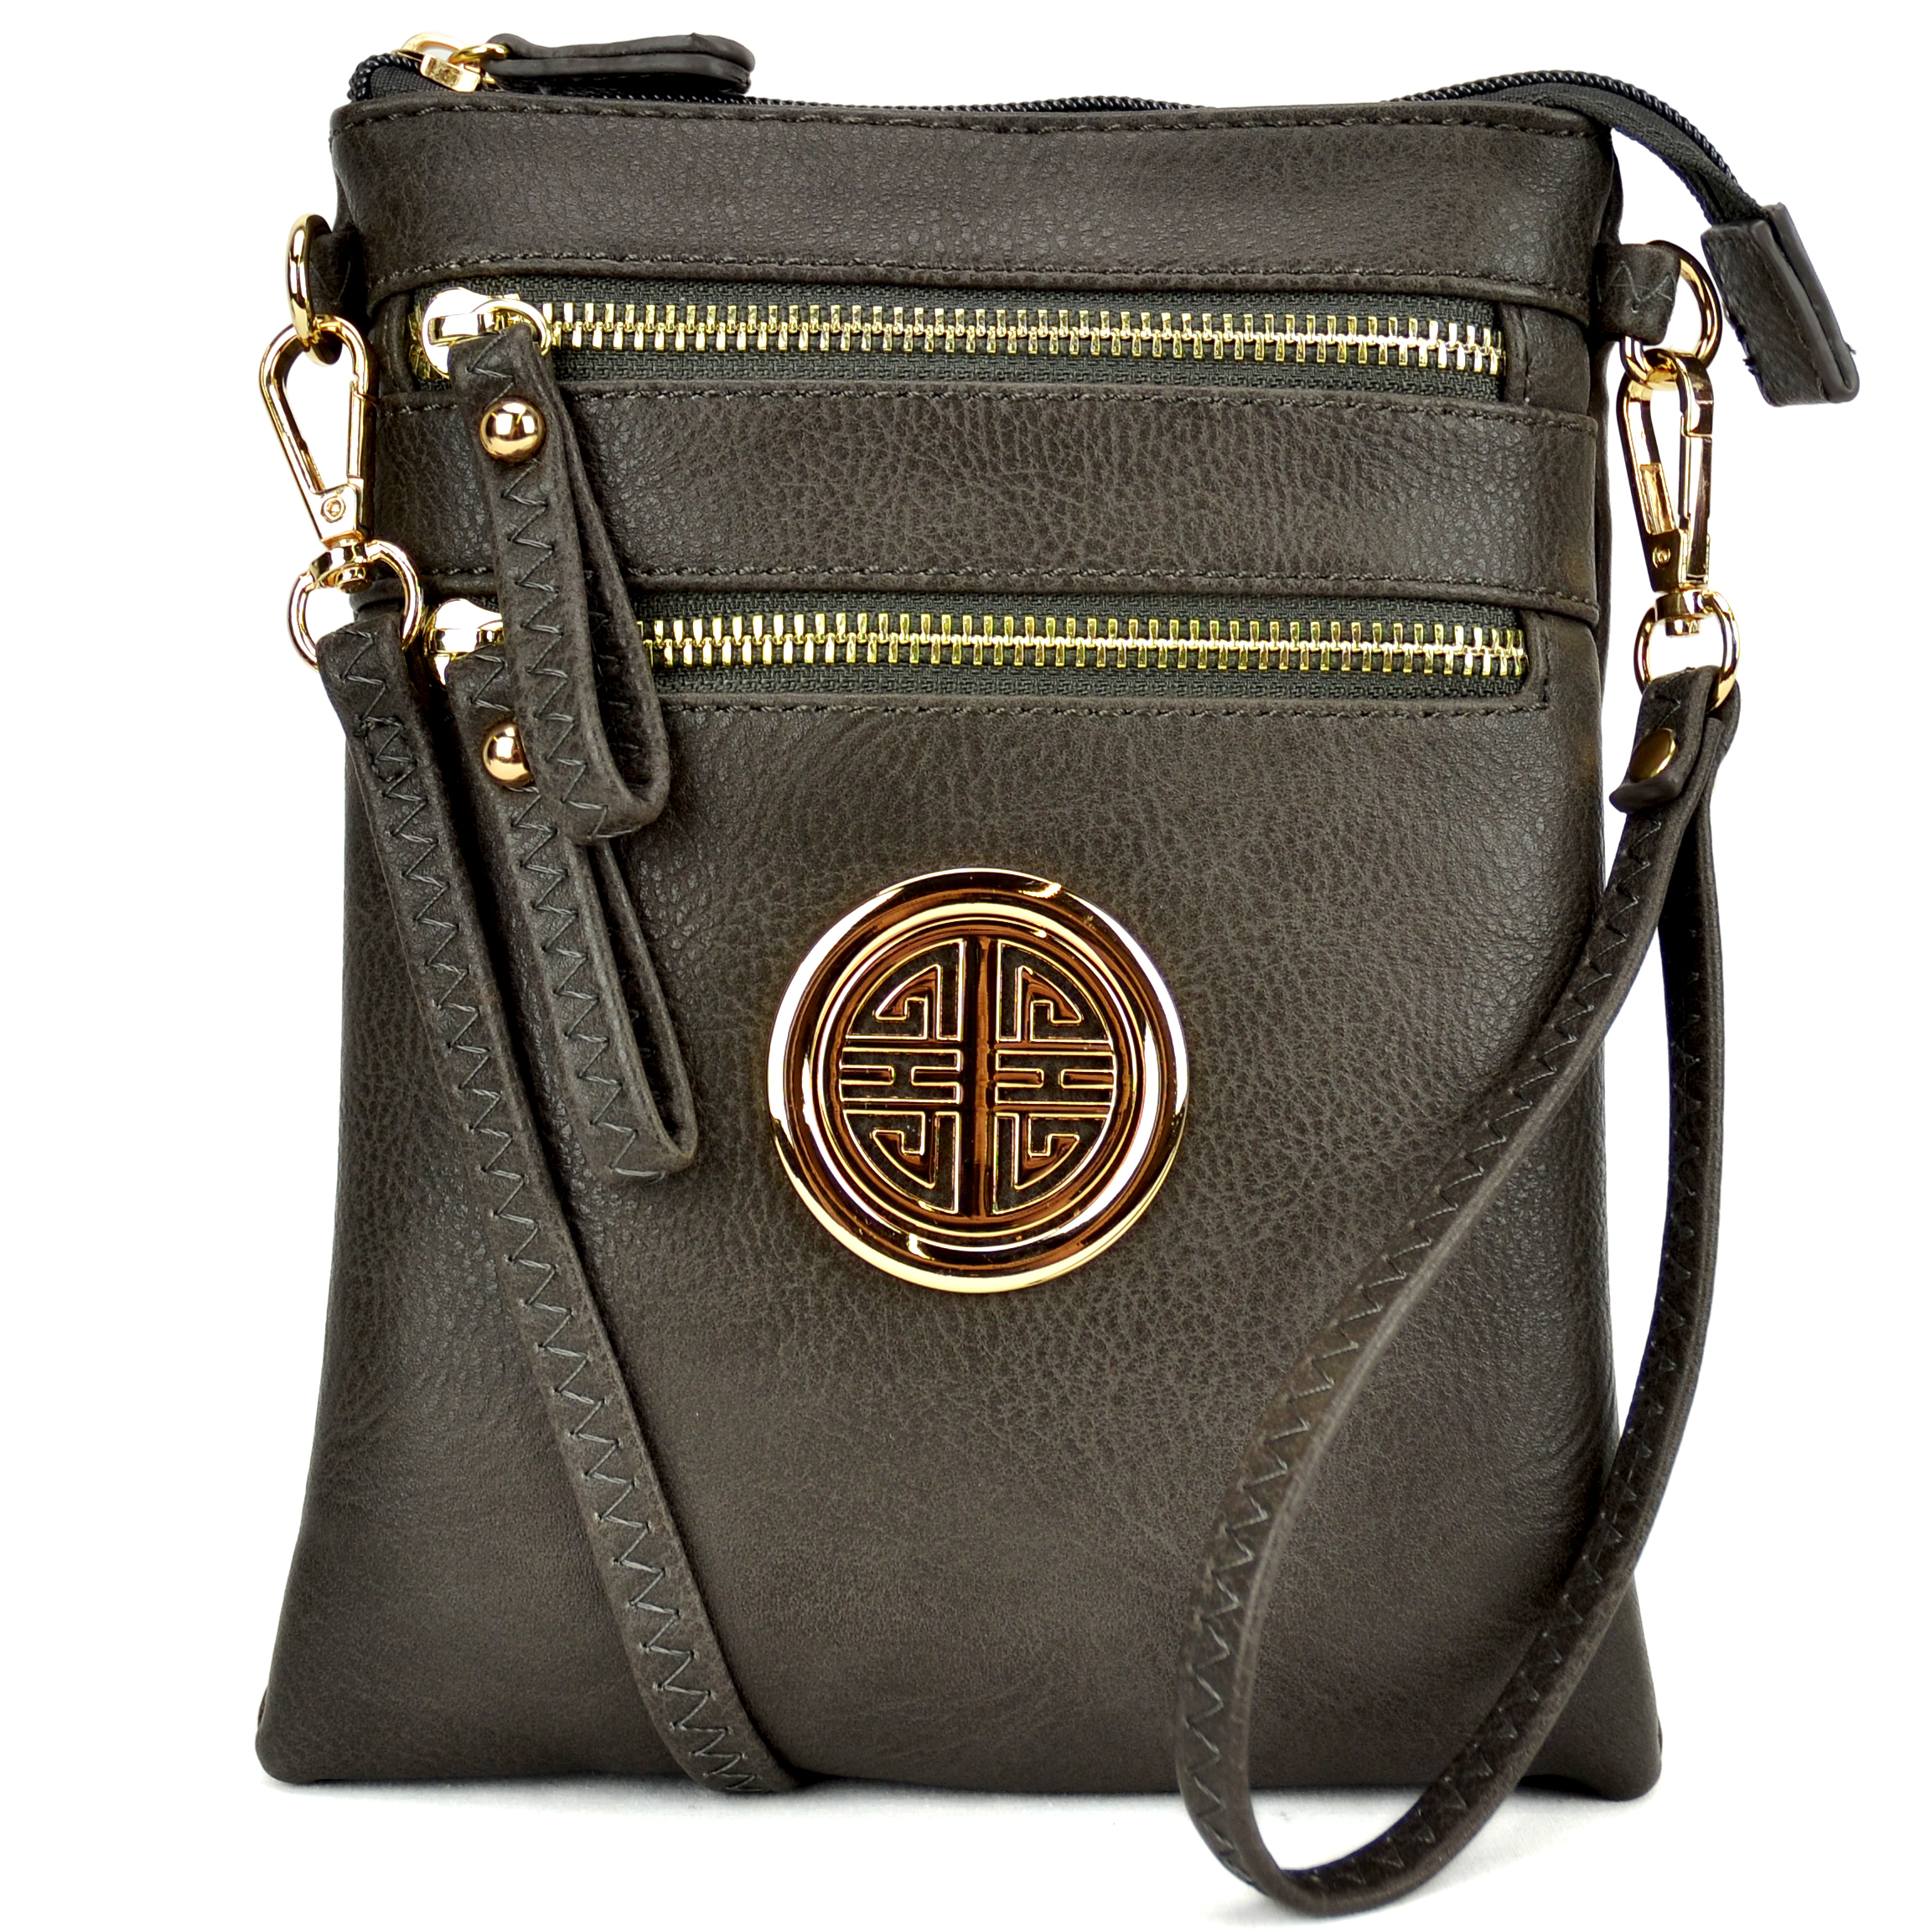 All-In-One Soft Faux Leather Crossbody/ Messenger Bag